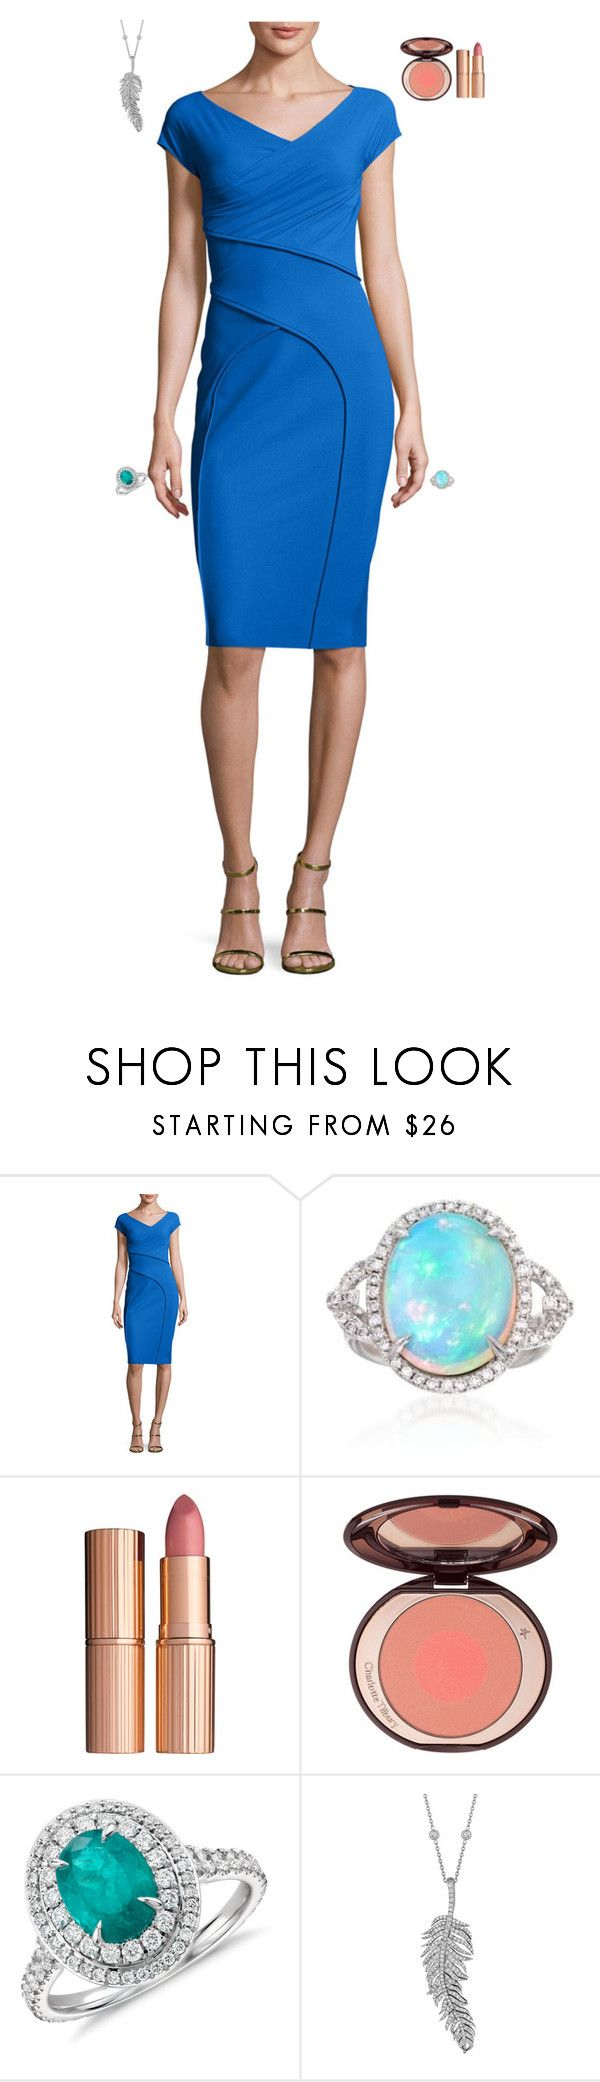 """""""Receive the friends for lunch"""" by stylev ❤ liked on Polyvore featuring La Petite Robe di Chiara Boni, Ross-Simons, Charlotte Tilbury, Blue Nile and Penny Preville"""